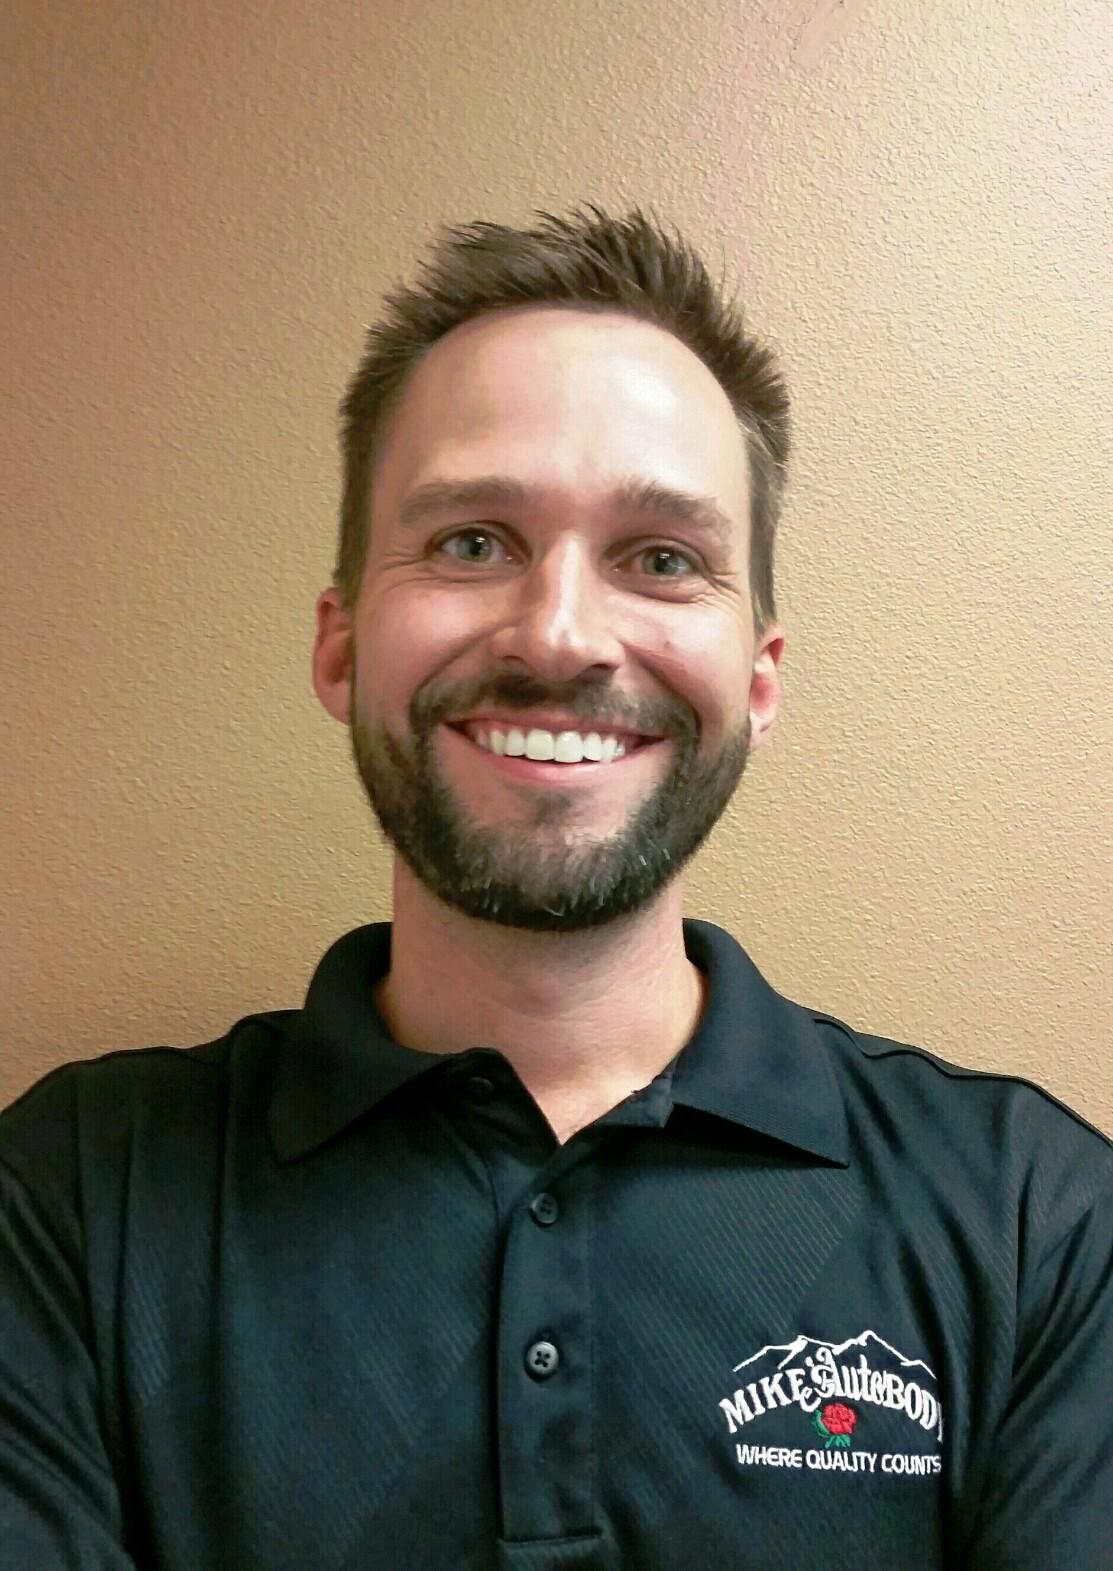 Mike's Auto Body Fairfield Location Manager